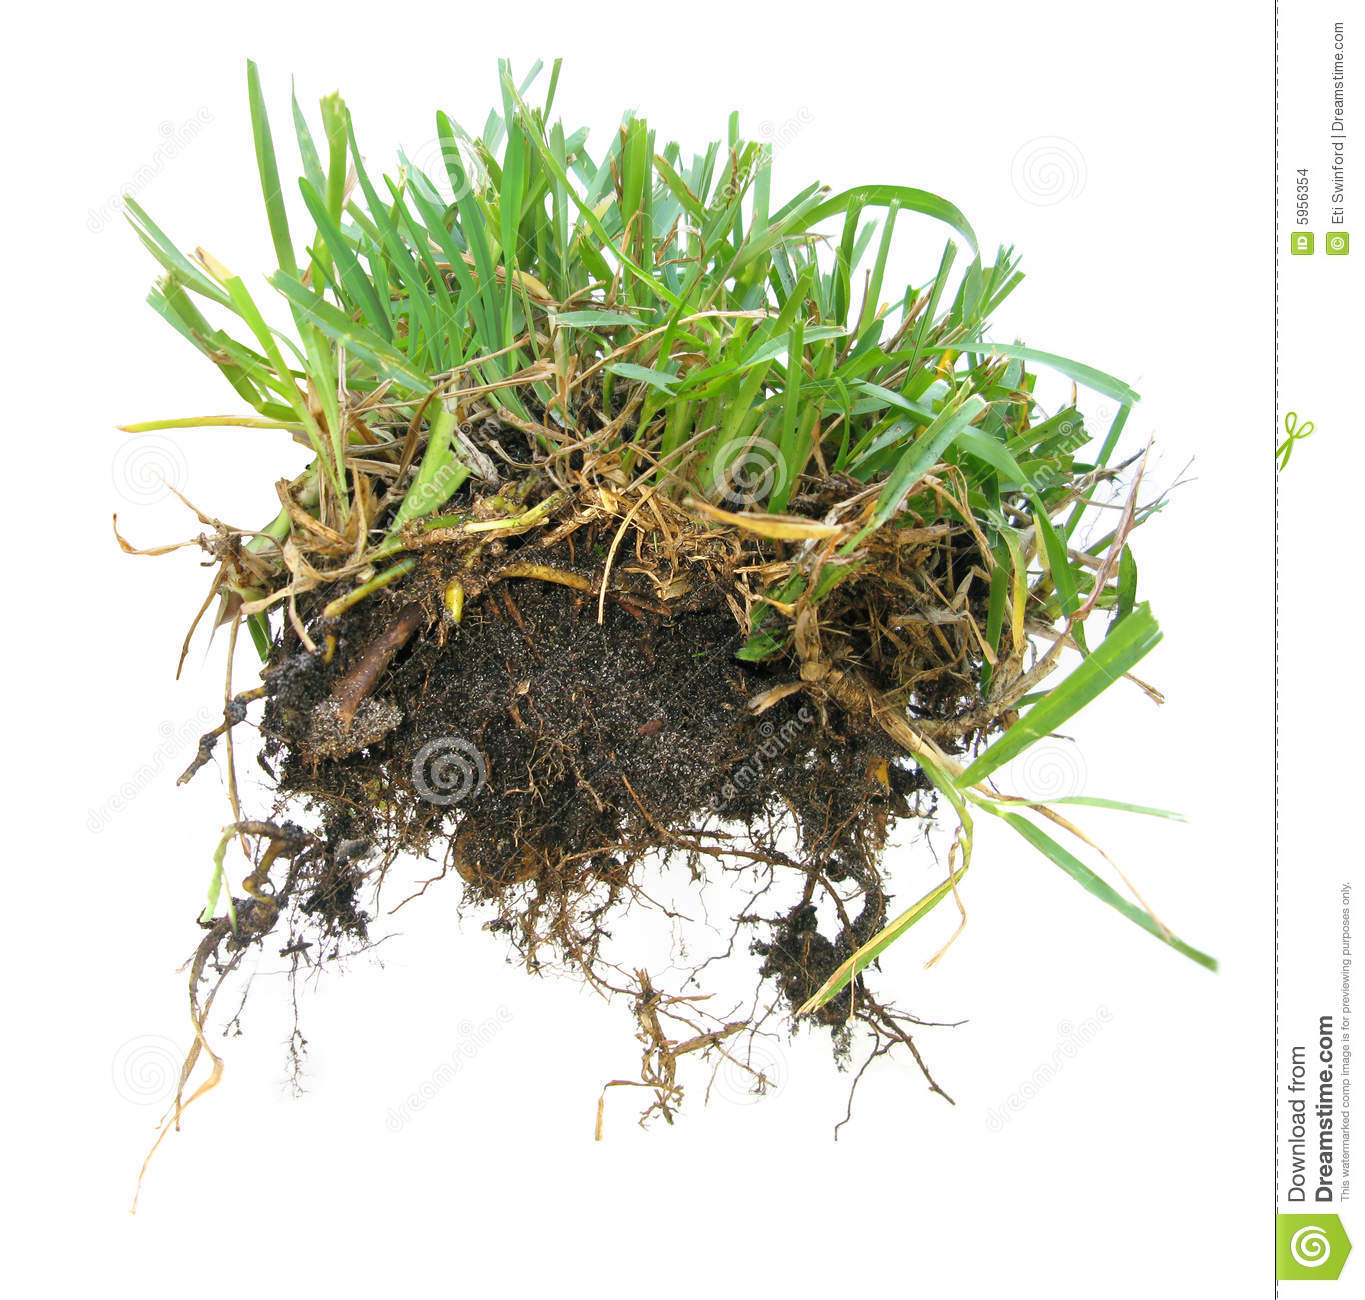 Grass Sod Stock Images - Image: 5956354